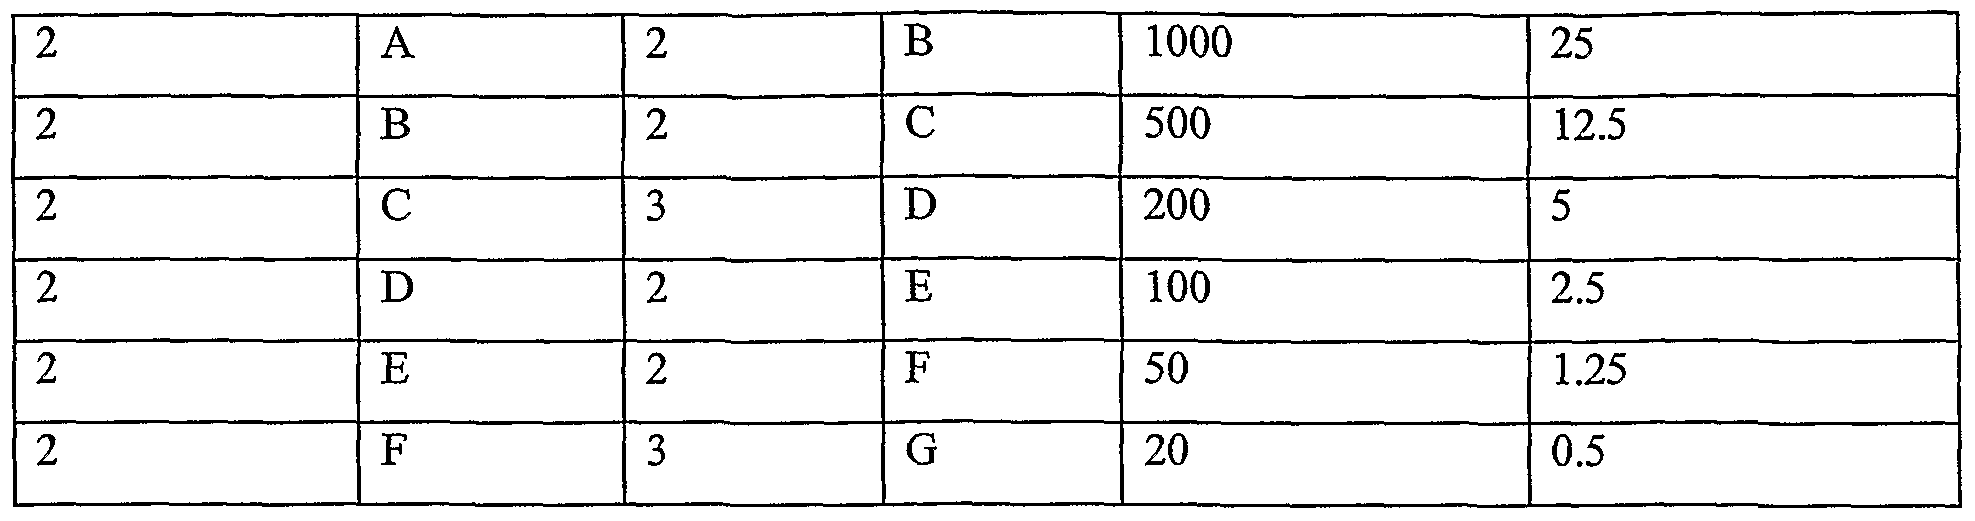 WO2006089009A2 - Methods and compositions for the treatment